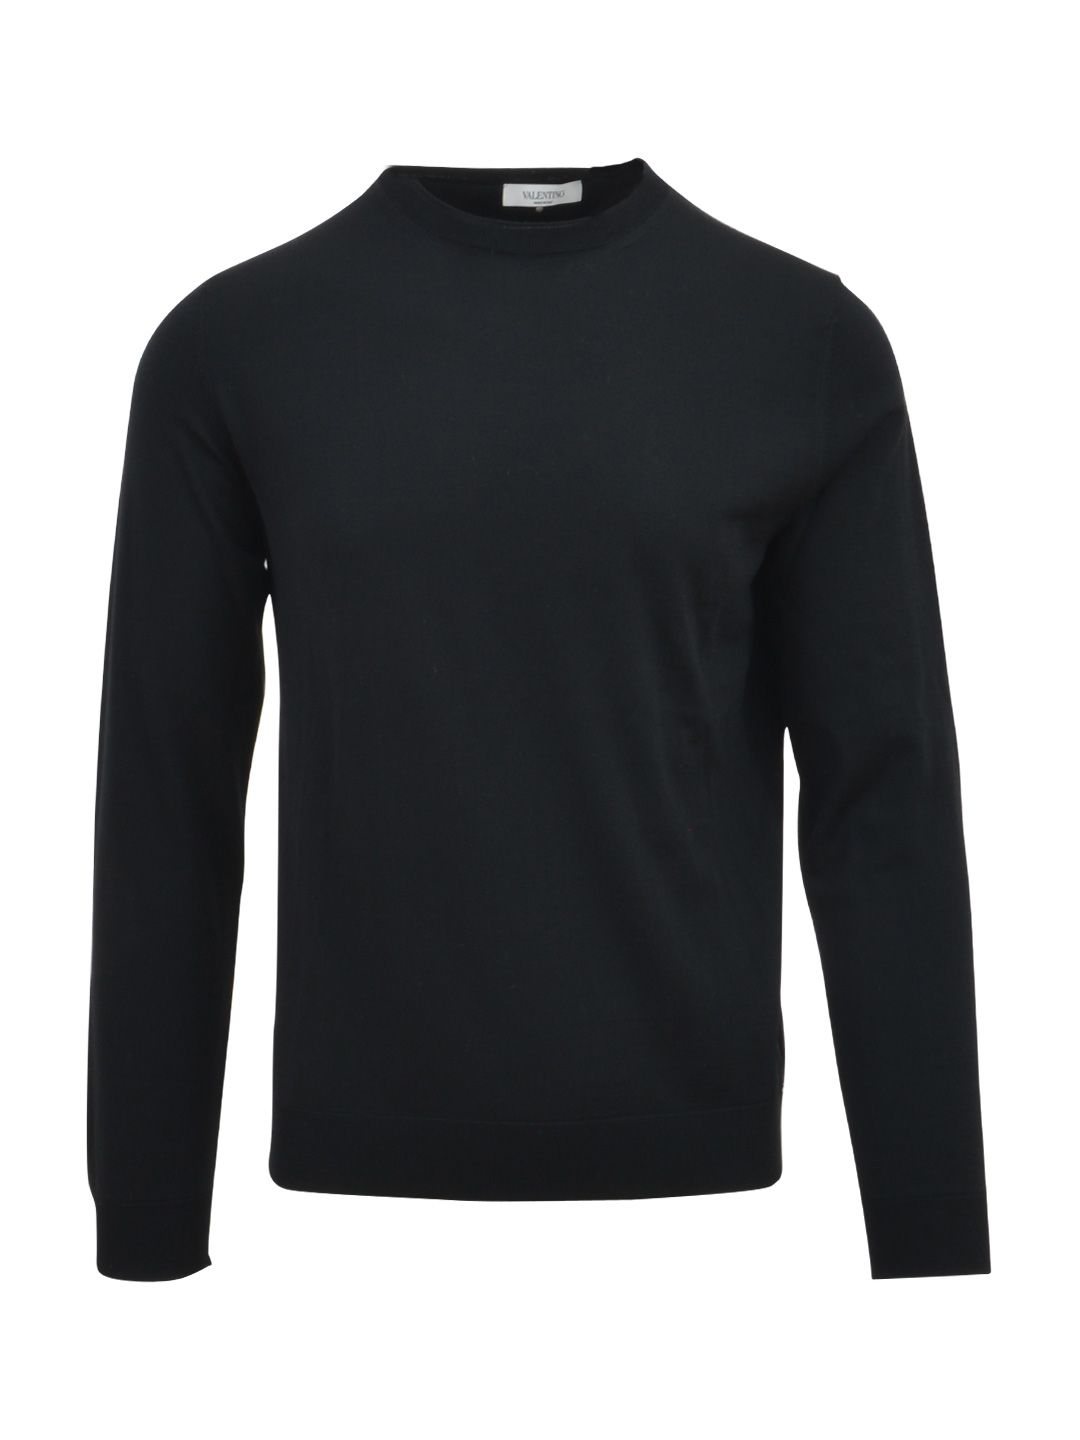 Valentino Lightweight Wool Knit Top